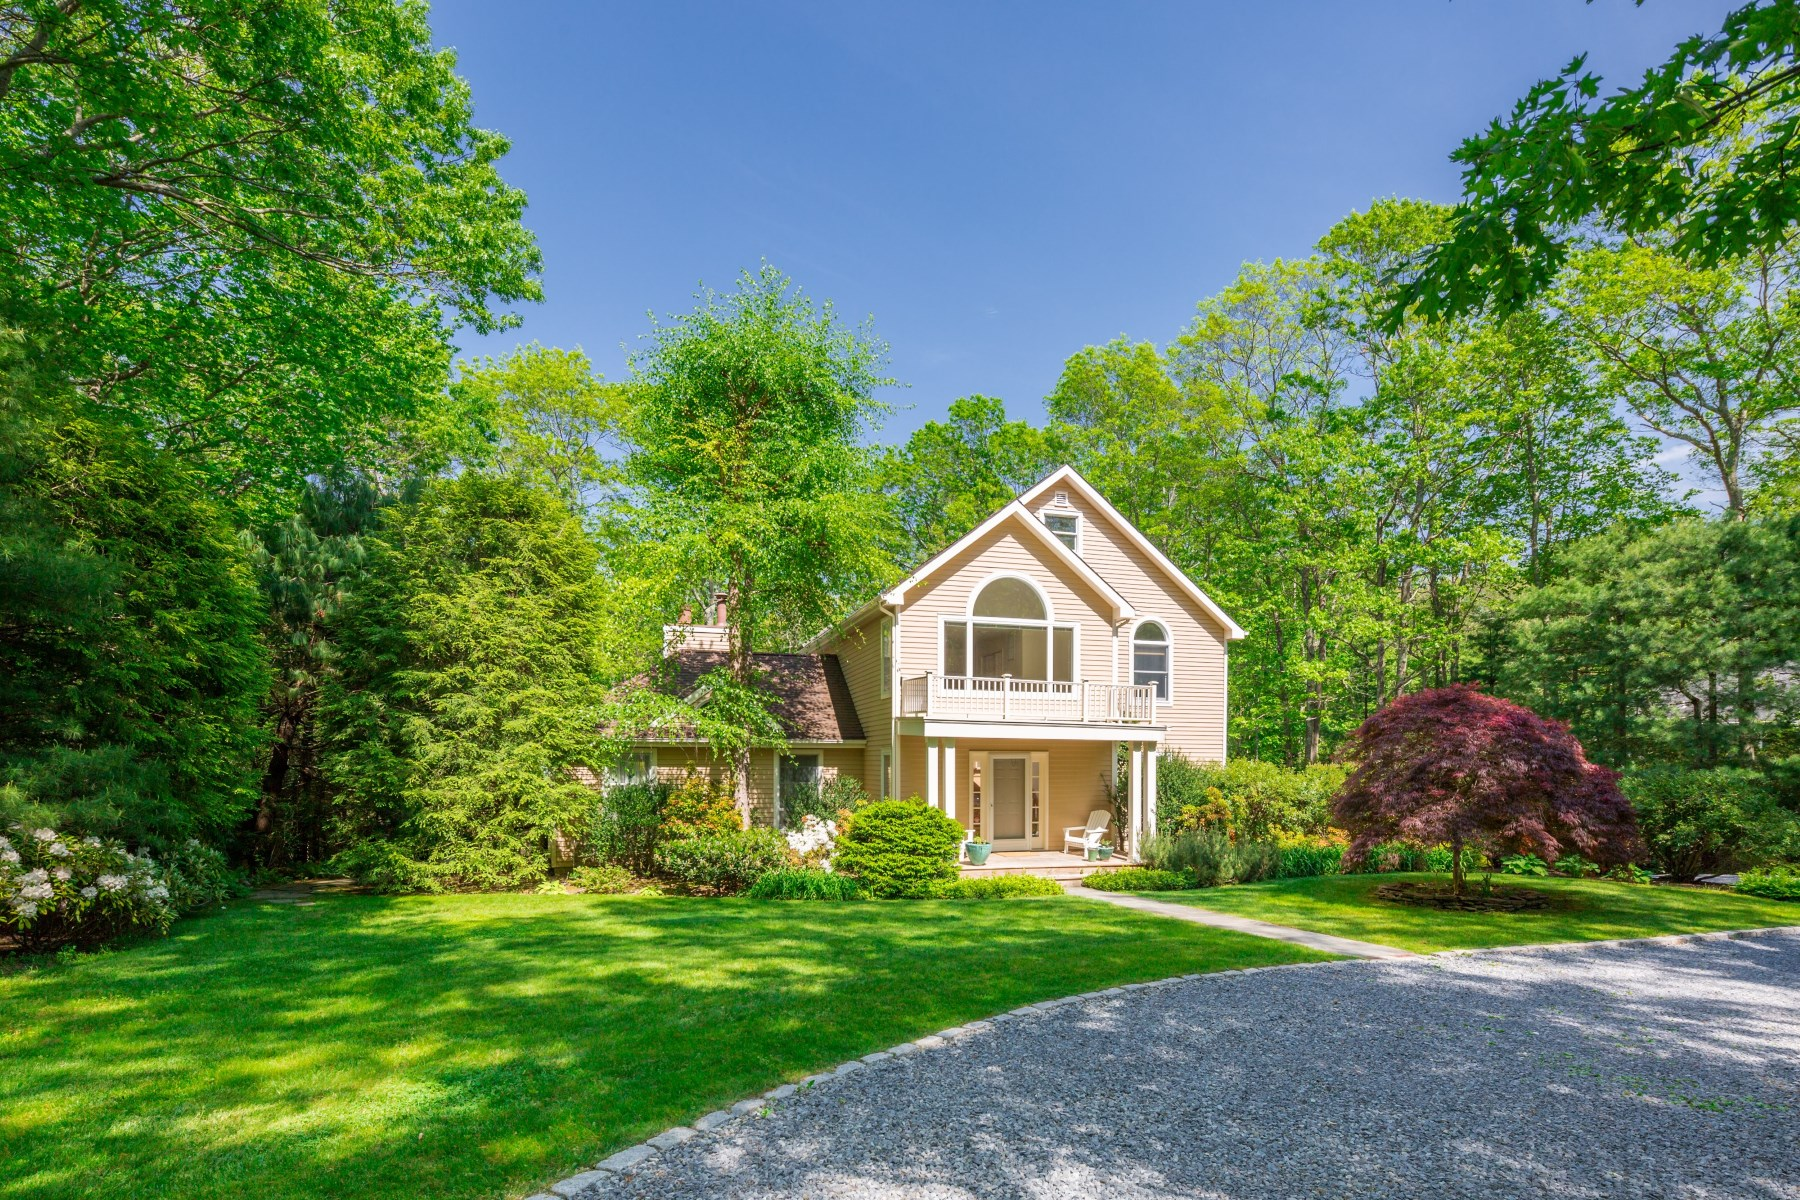 Single Family Home for Rent at Sag Harbor Summer Rental Sag Harbor, New York 11963 United States